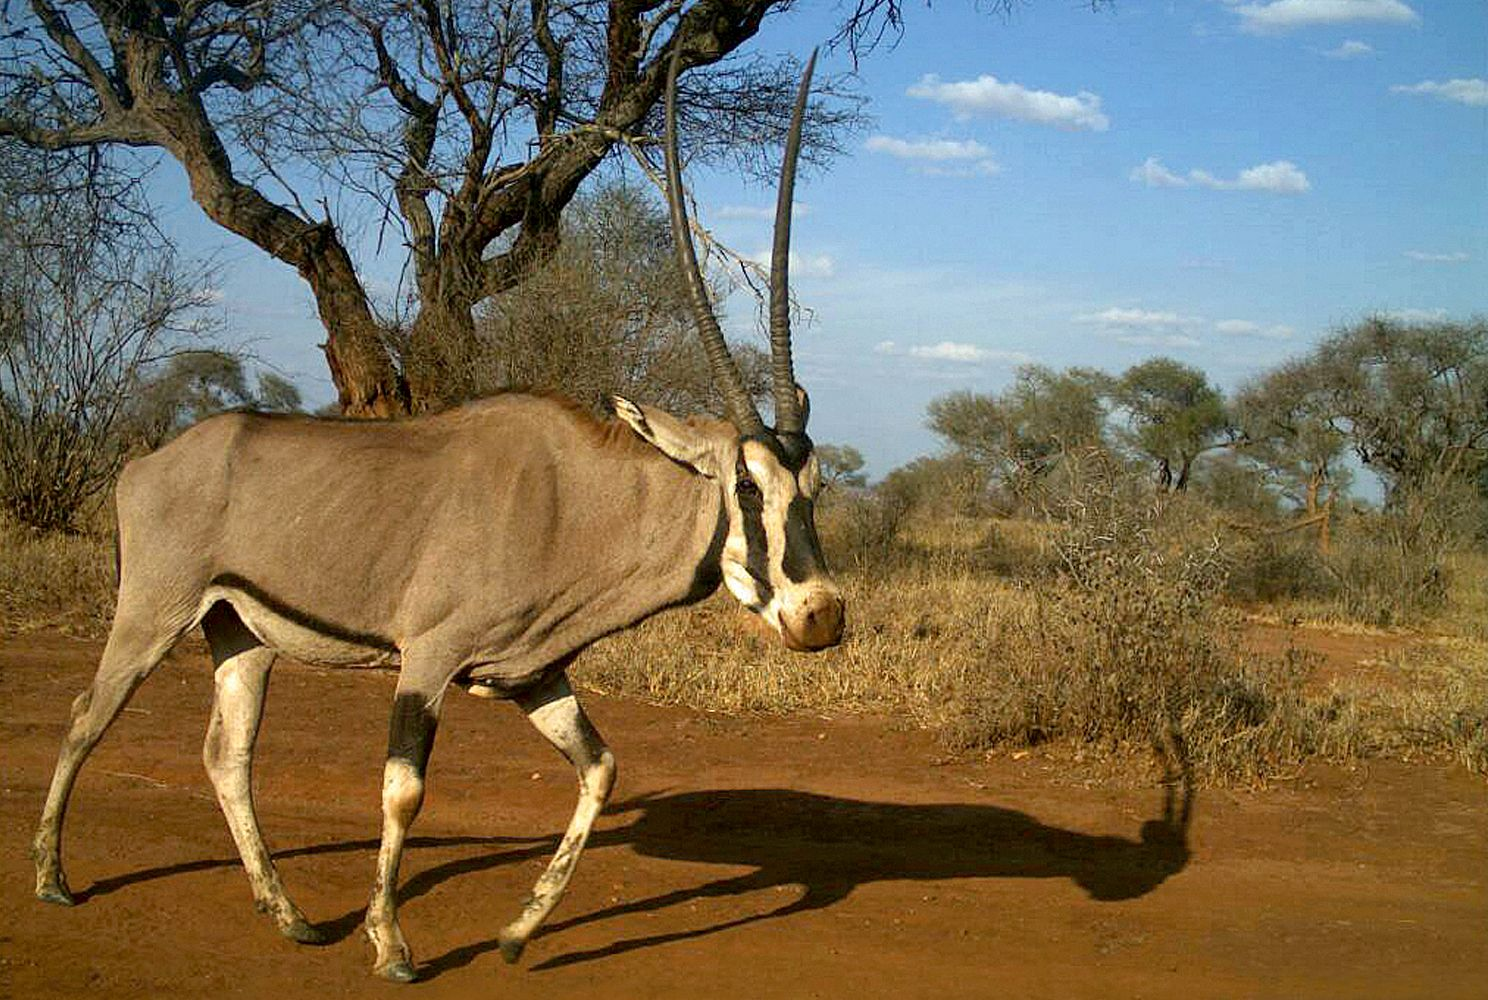 A camera trap image of a fringe-eared oryx in Tanzania